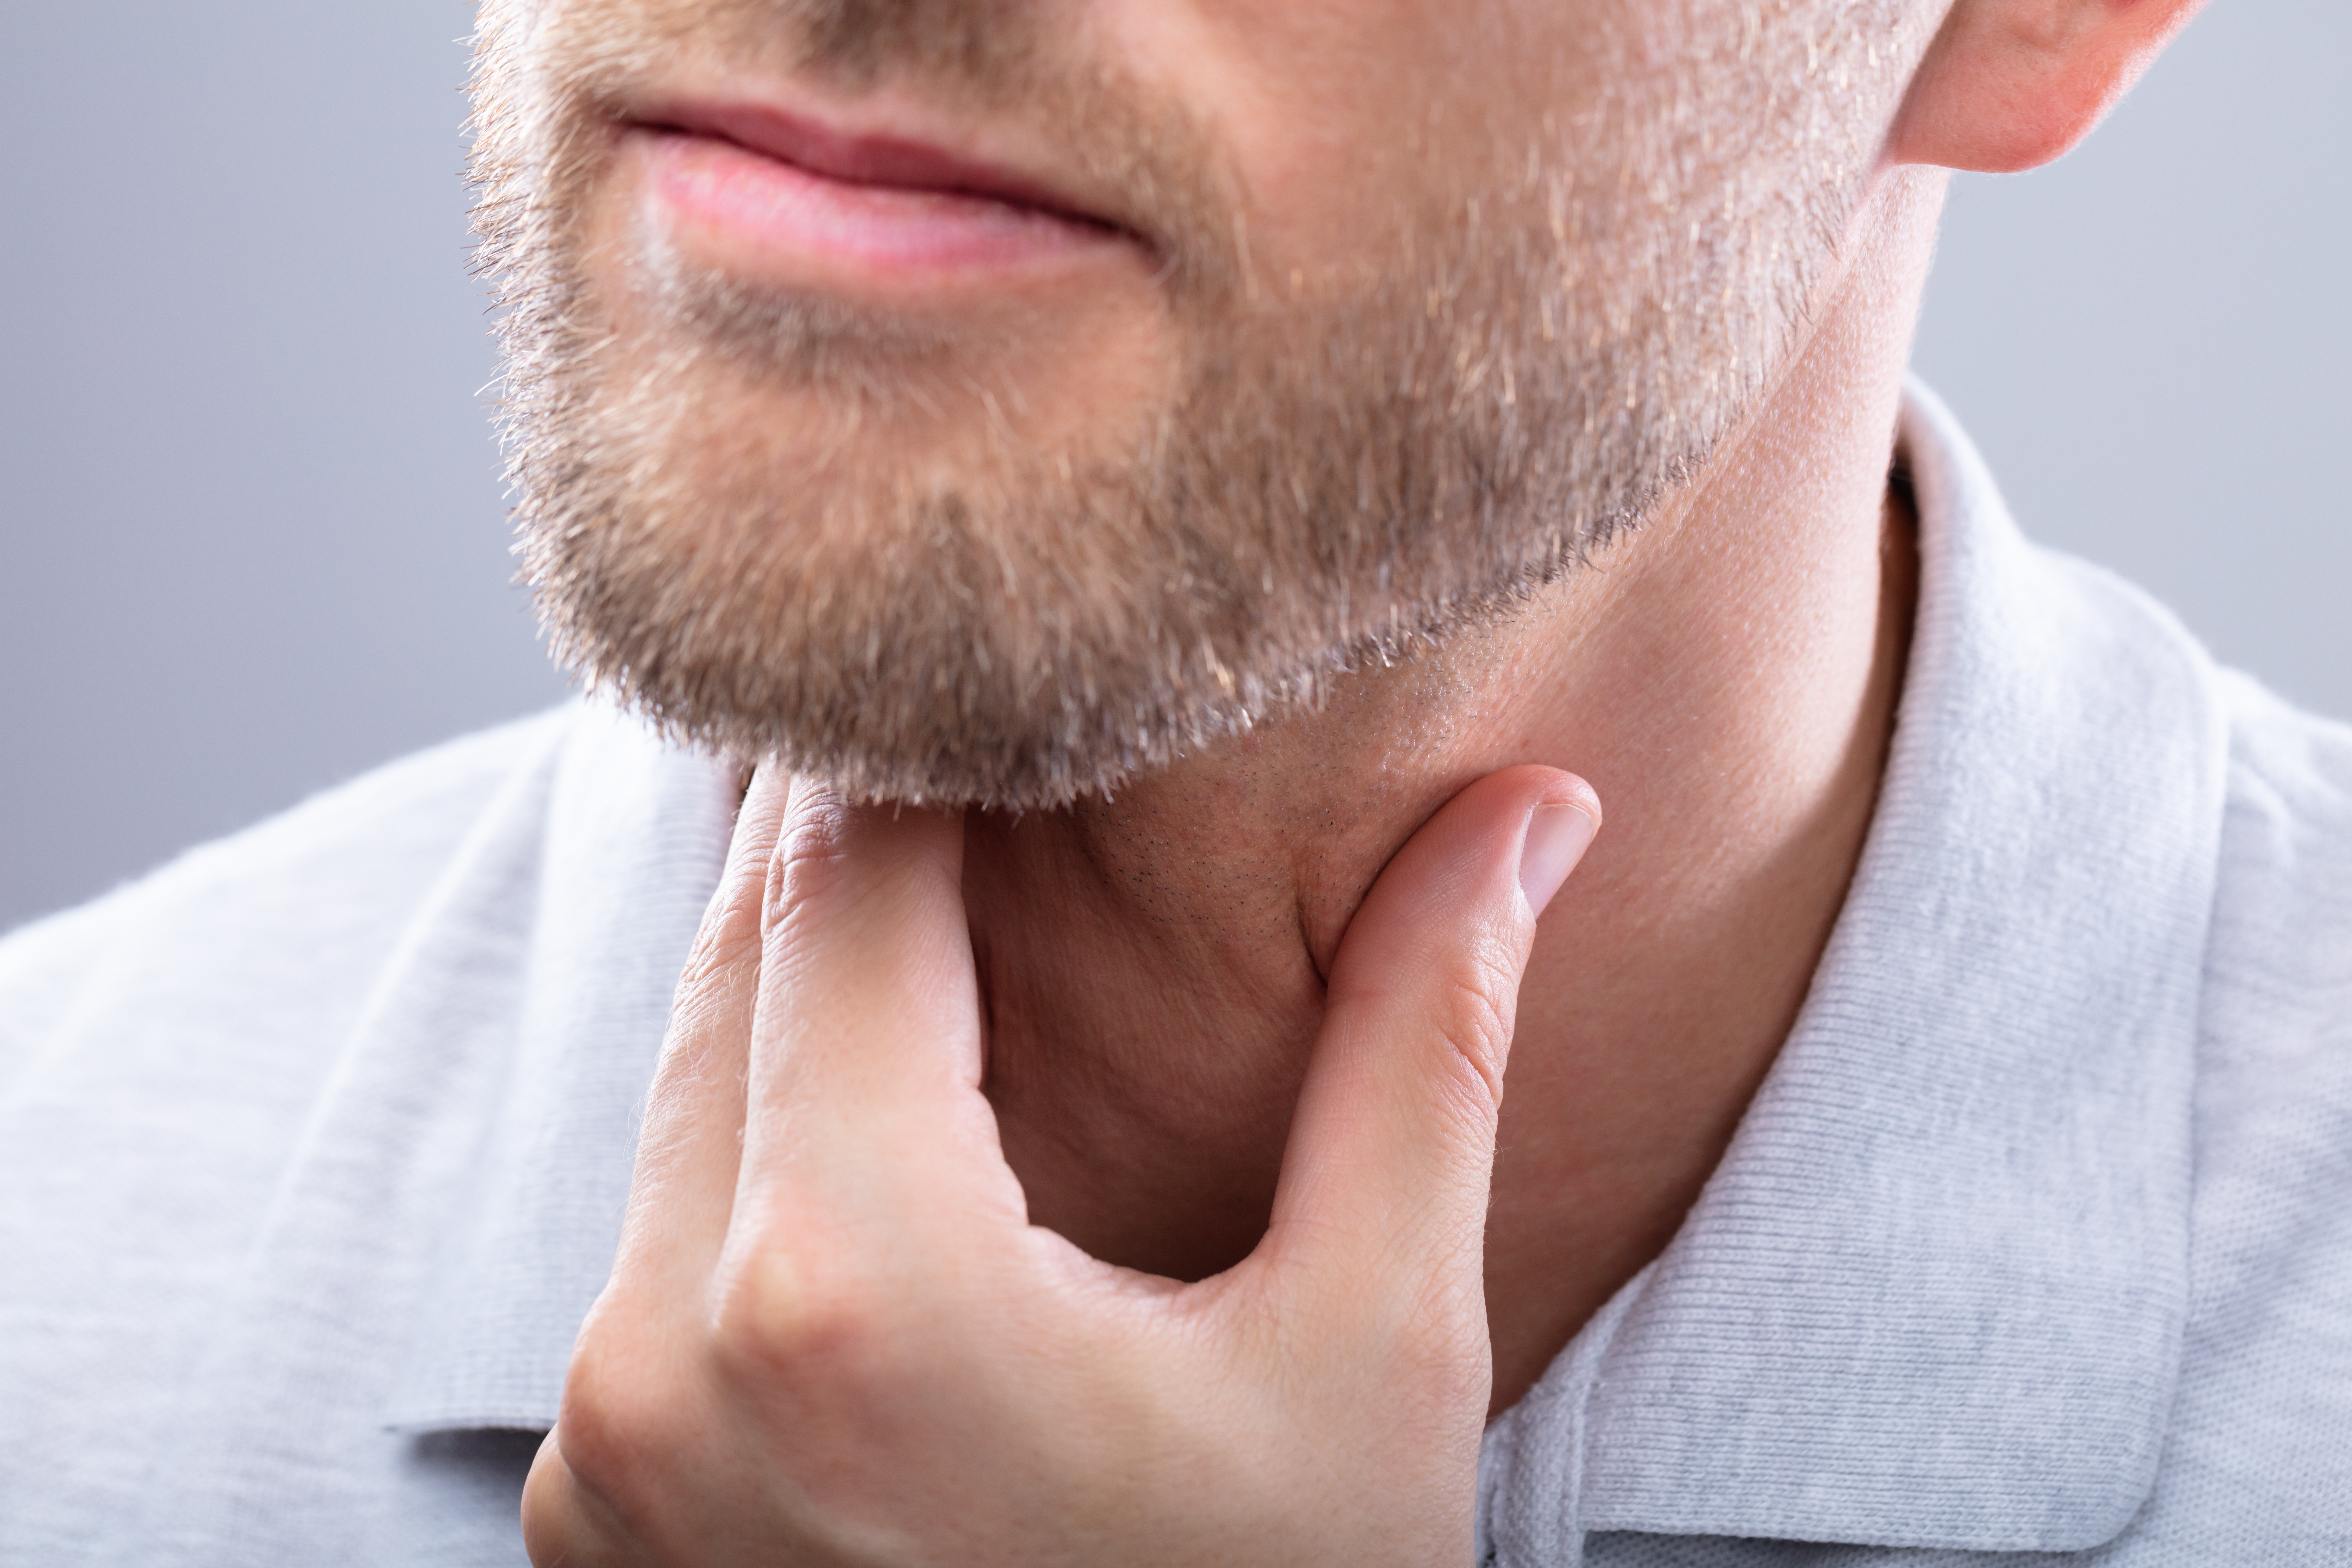 Chest Pain with Hoarse Voice: May Be Cancer or Aortic Aneurysm